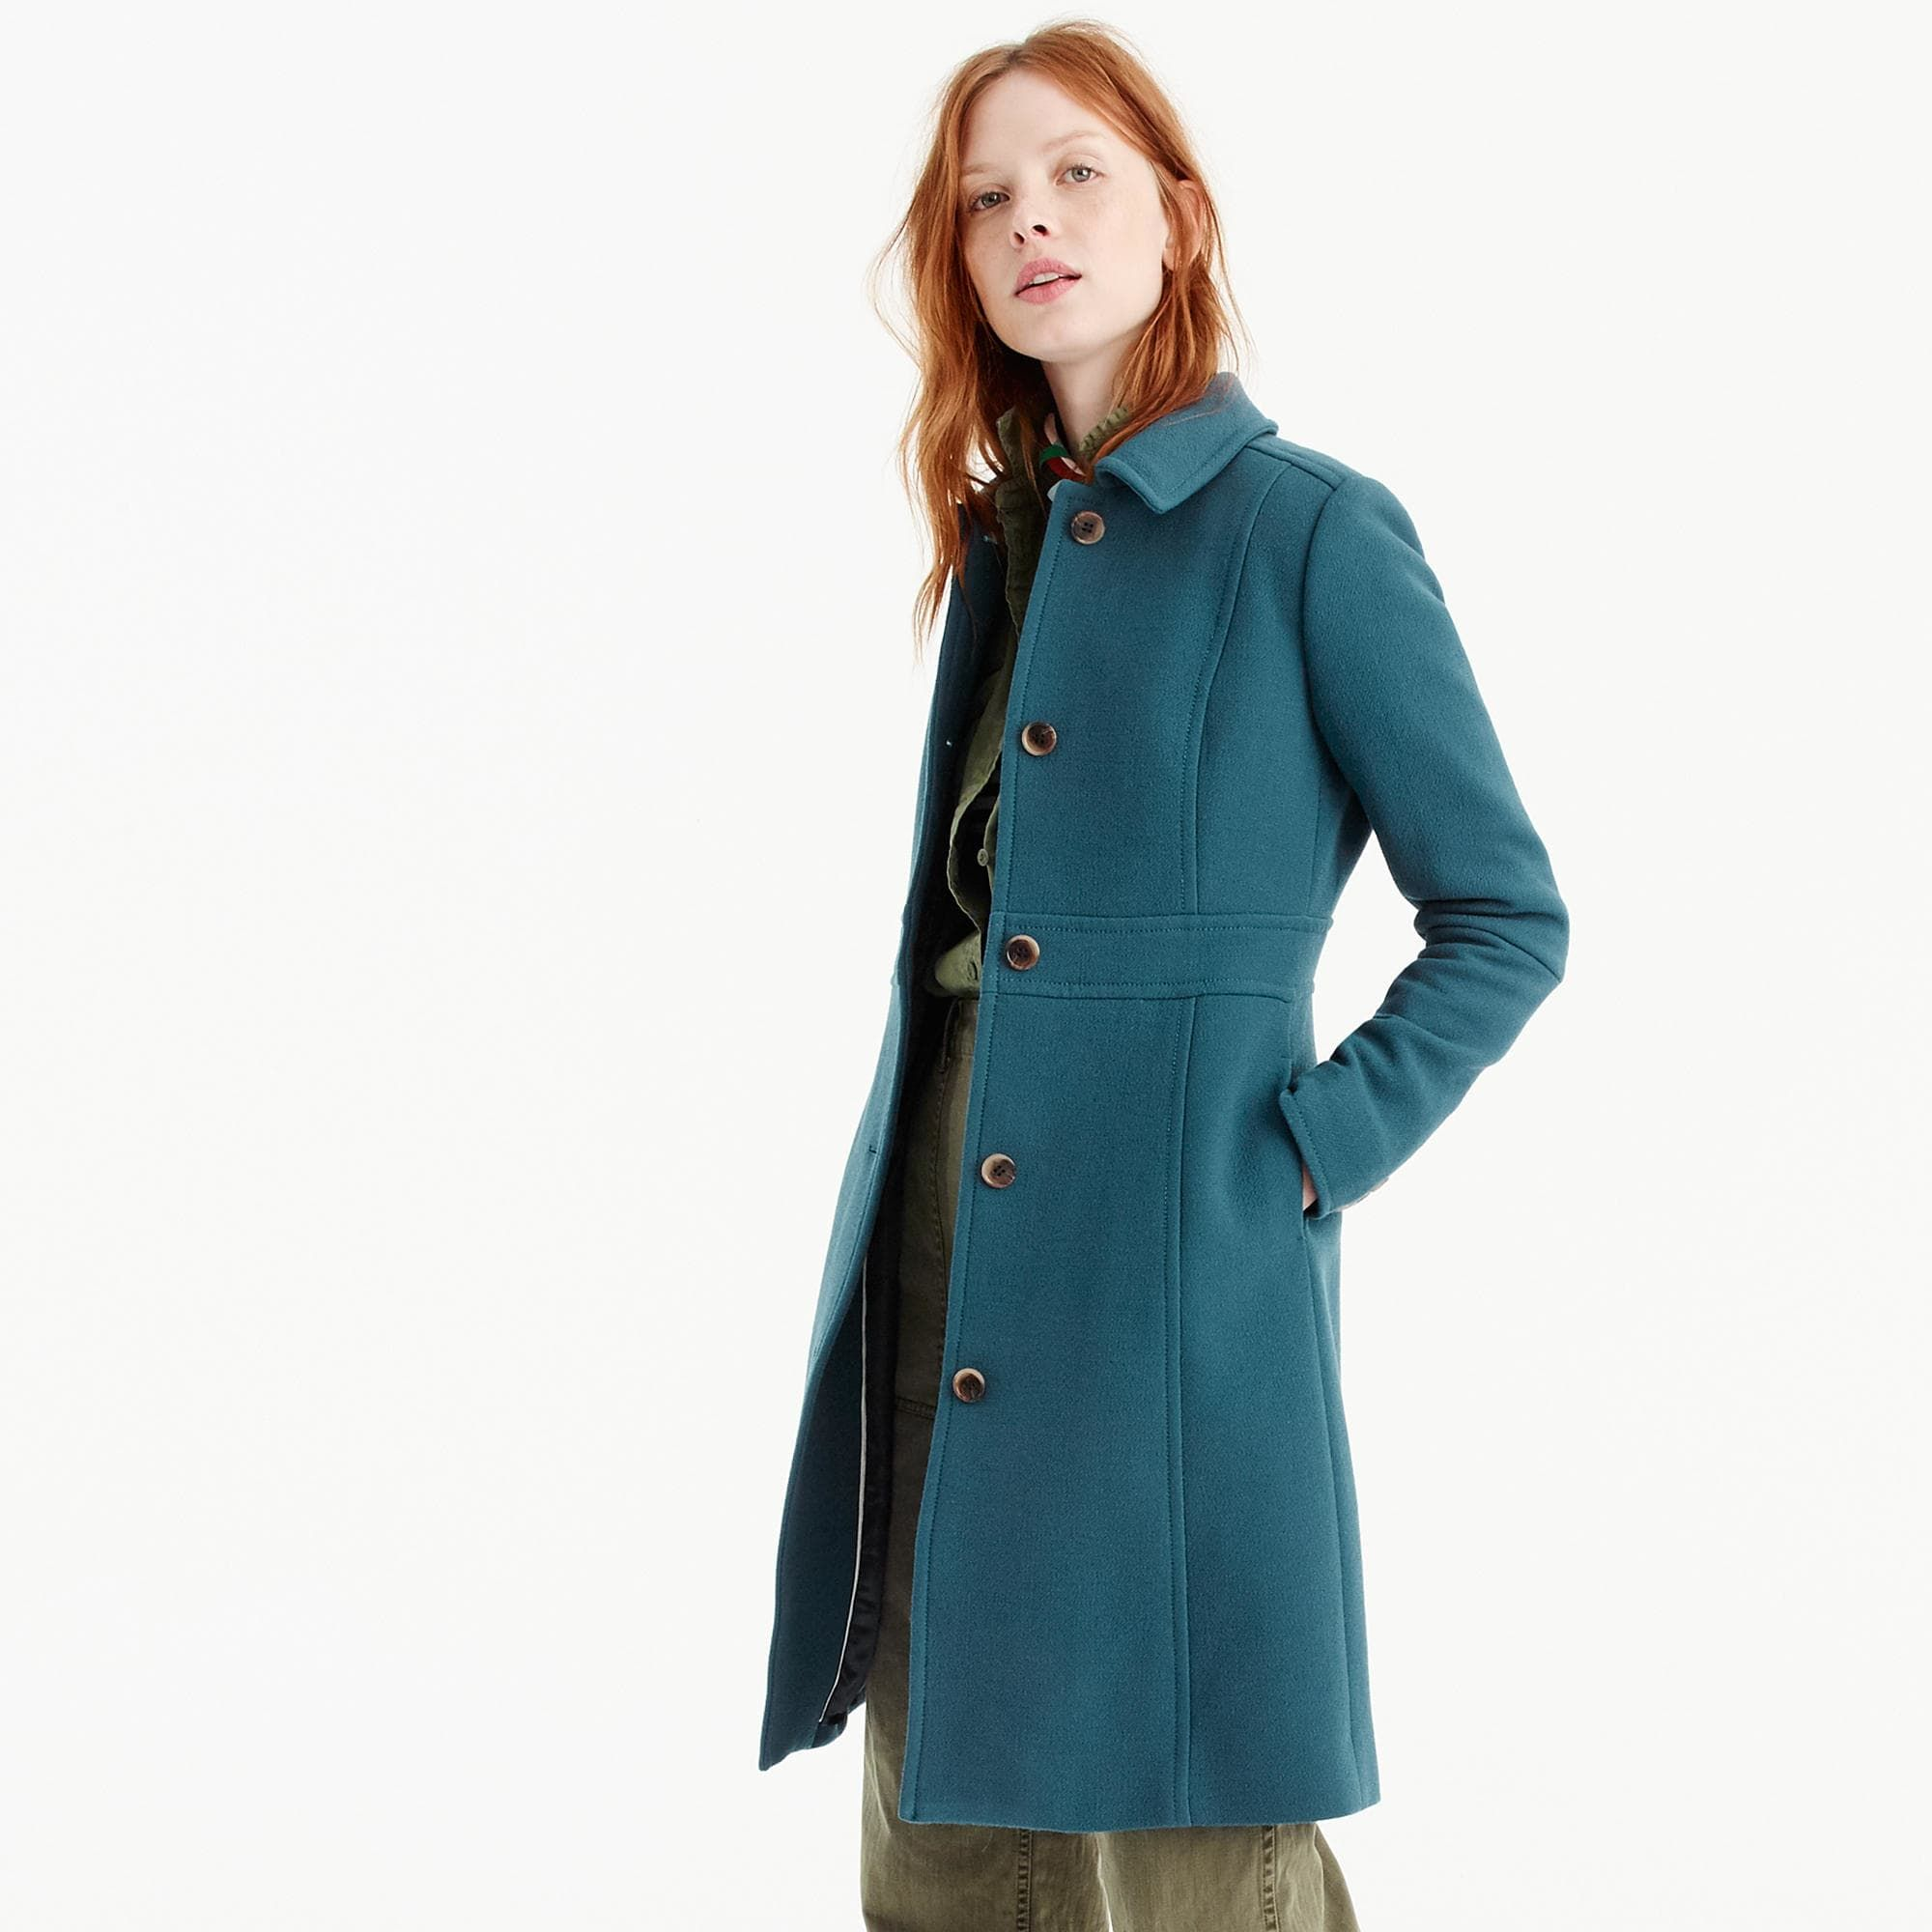 Petite Italian double-cloth wool lady day coat in